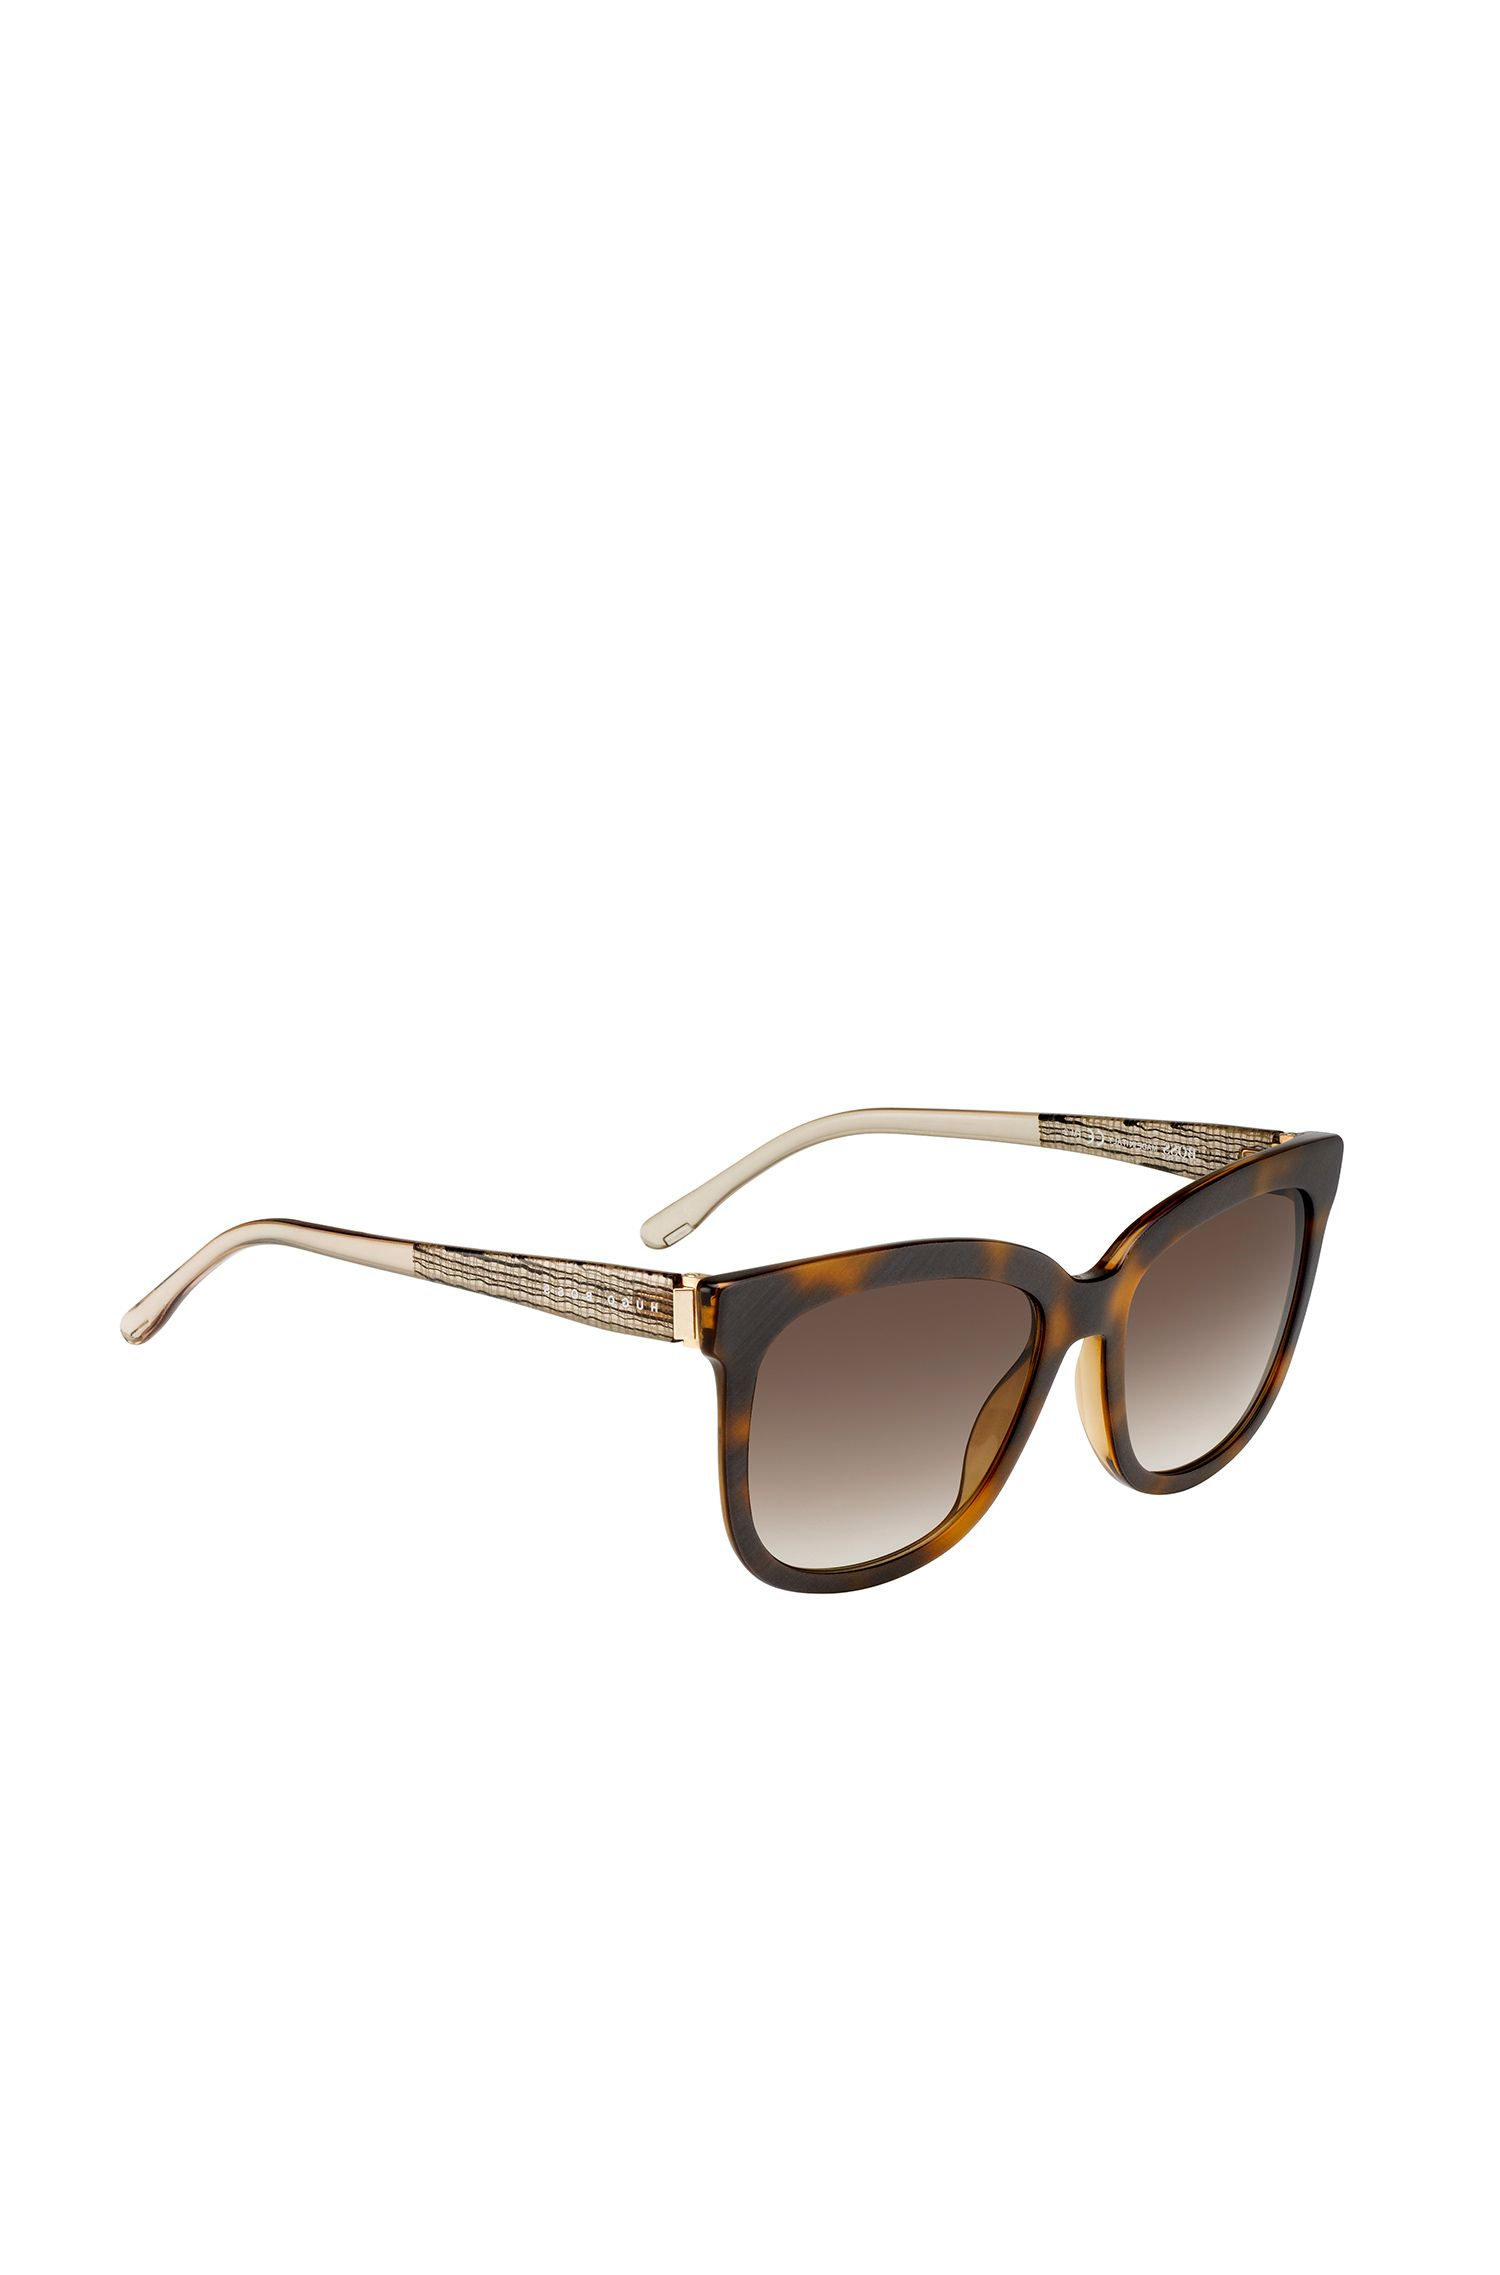 Acetate Optyl Cateye Sunglasses | BOSS 0850S